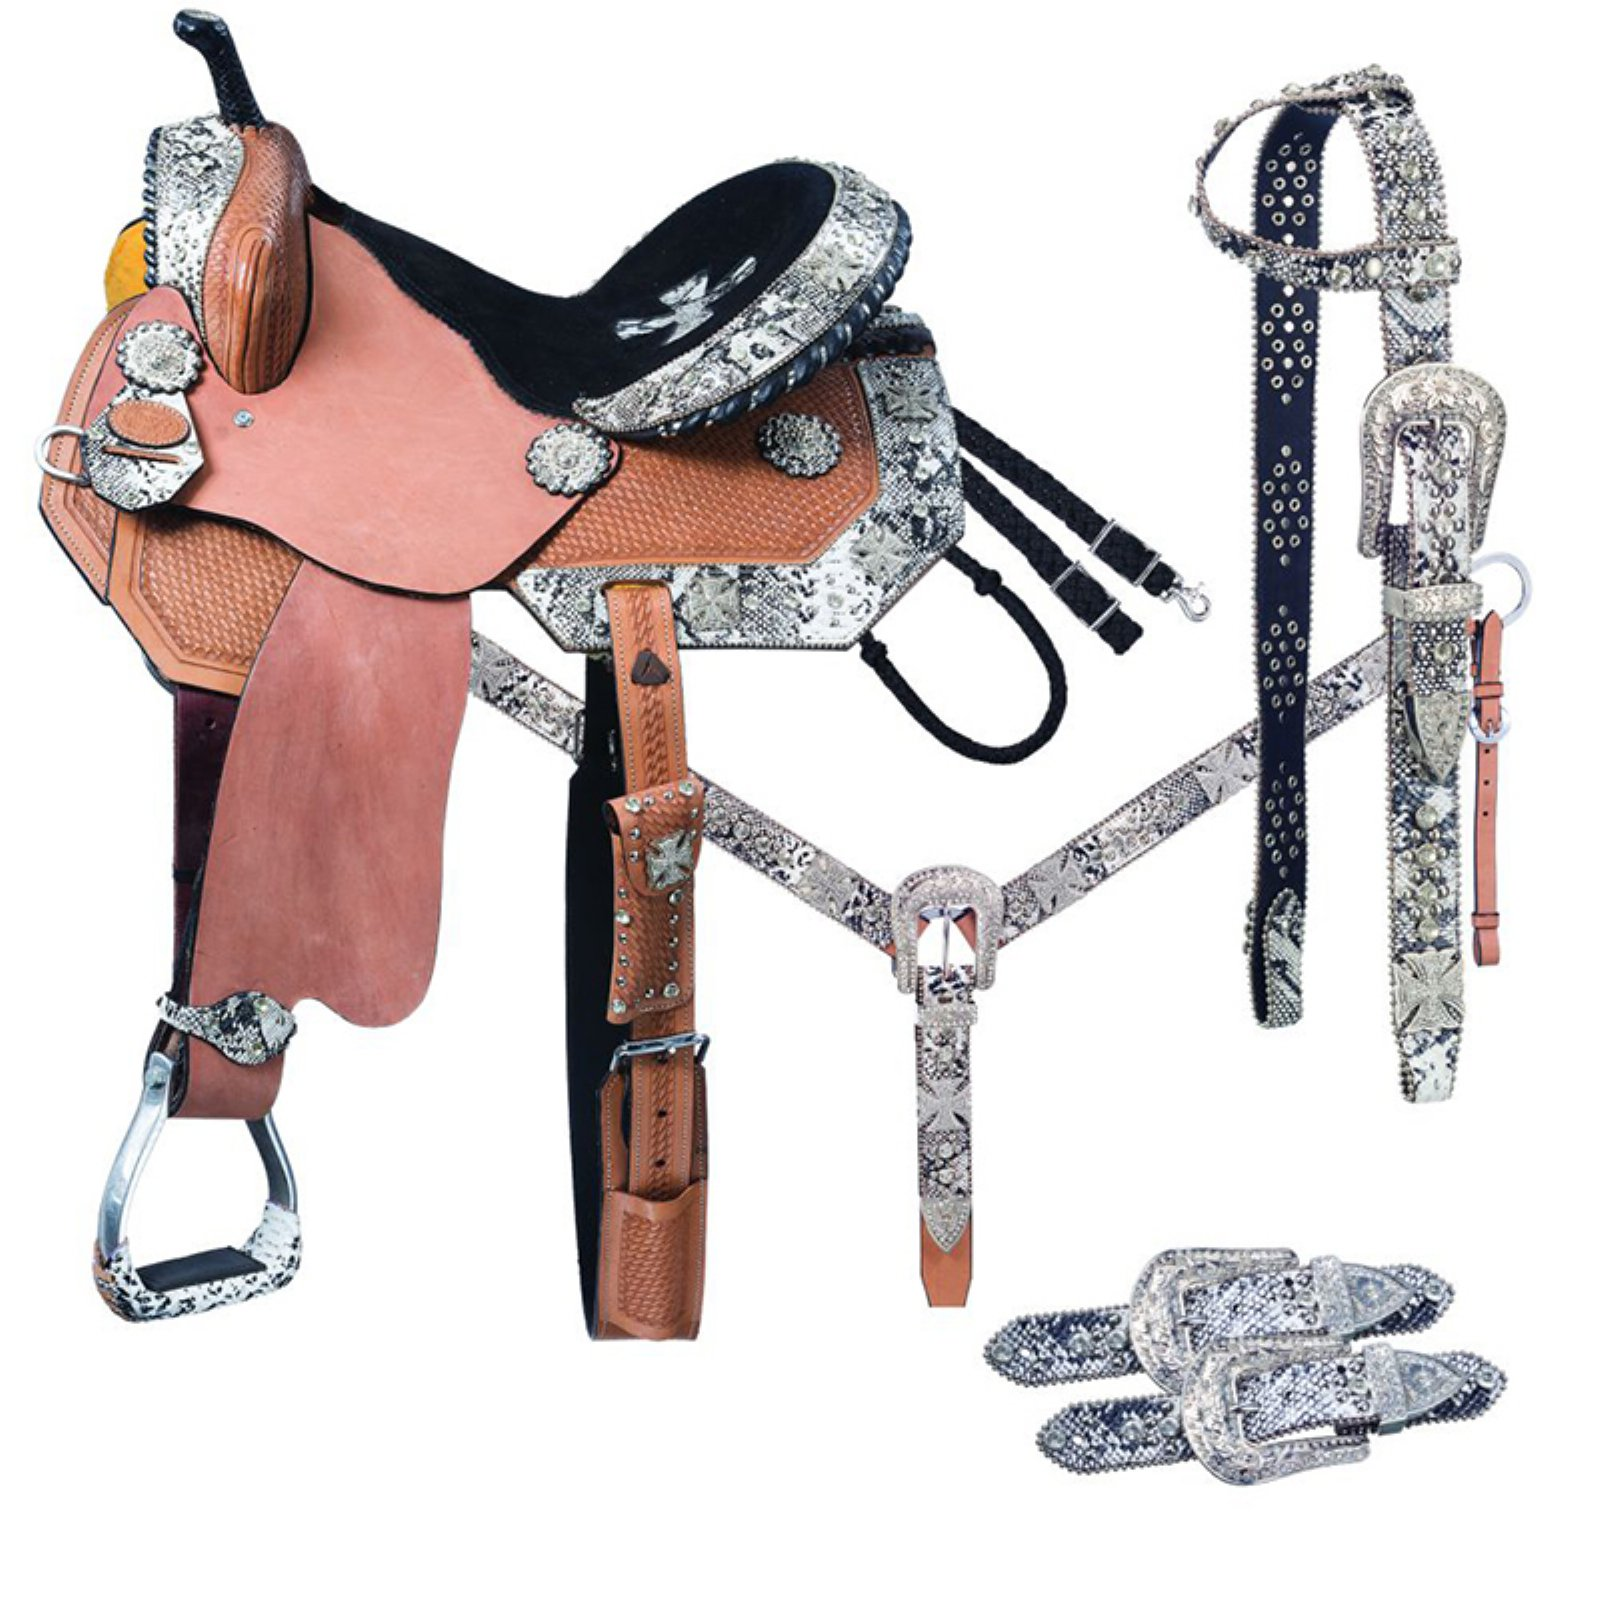 Greyson Barrel 5 Piece Horse Saddle Package